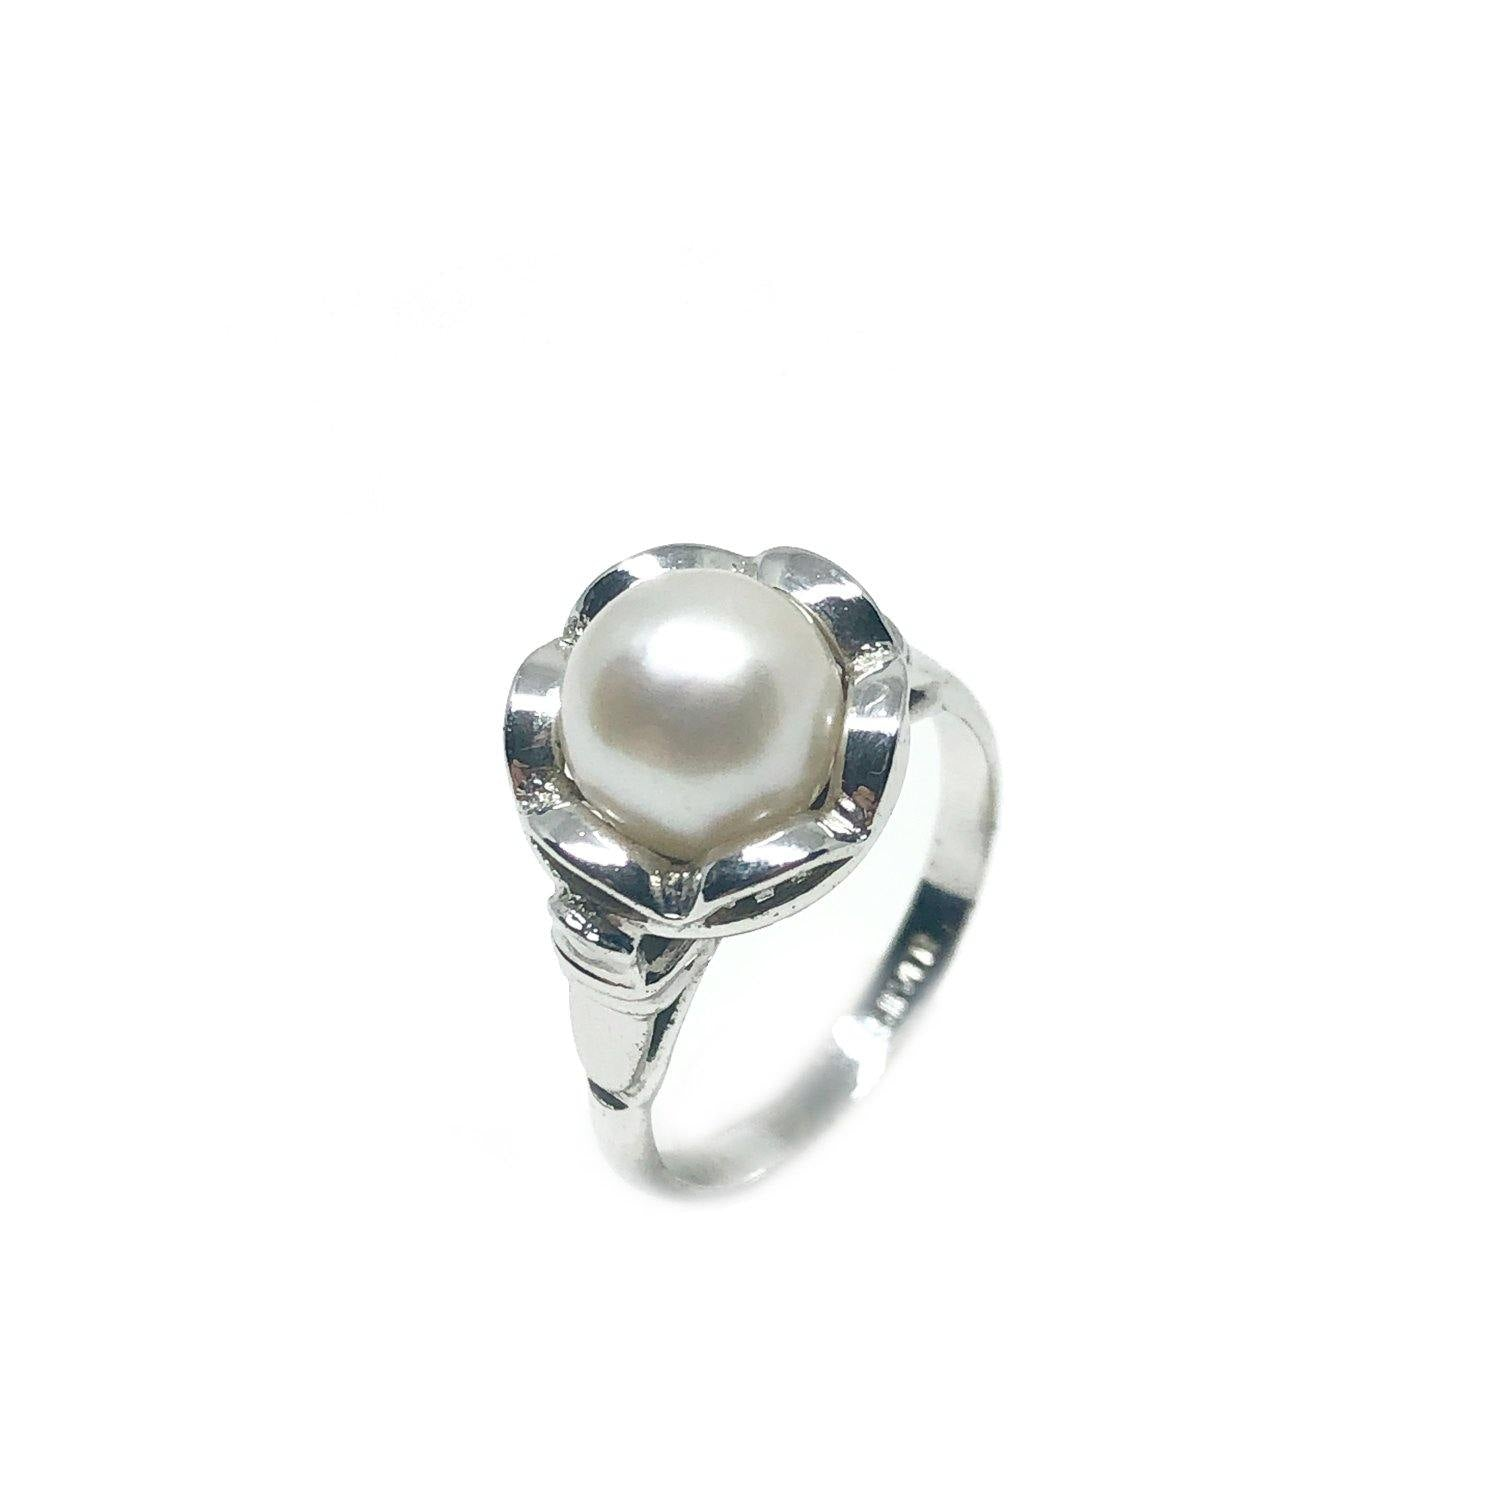 Floral Halo Japanese Saltwater Akoya Cultured Pearl Ring- Sterling Silver Sz 4 1/2 Up